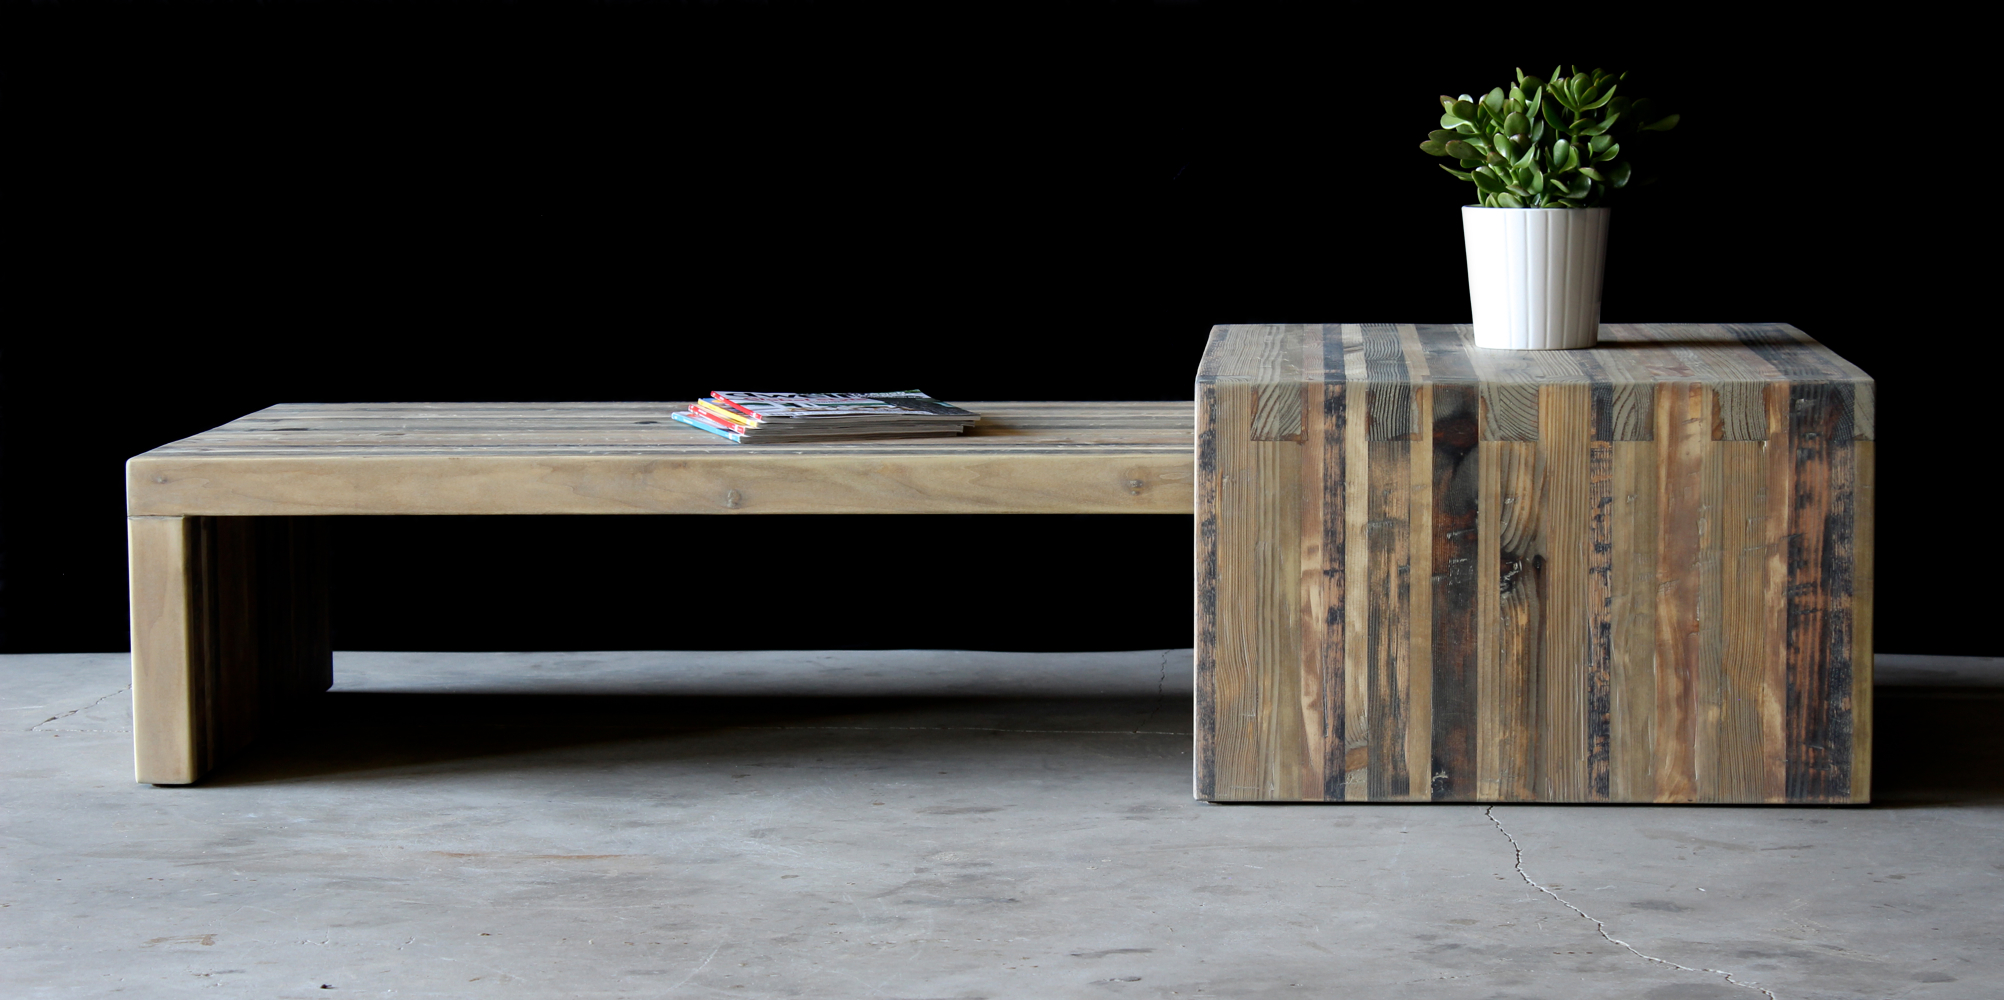 Wow wood seventeen20 is a small furniture company specializing in hand crafted industrial and modern furniture design and production